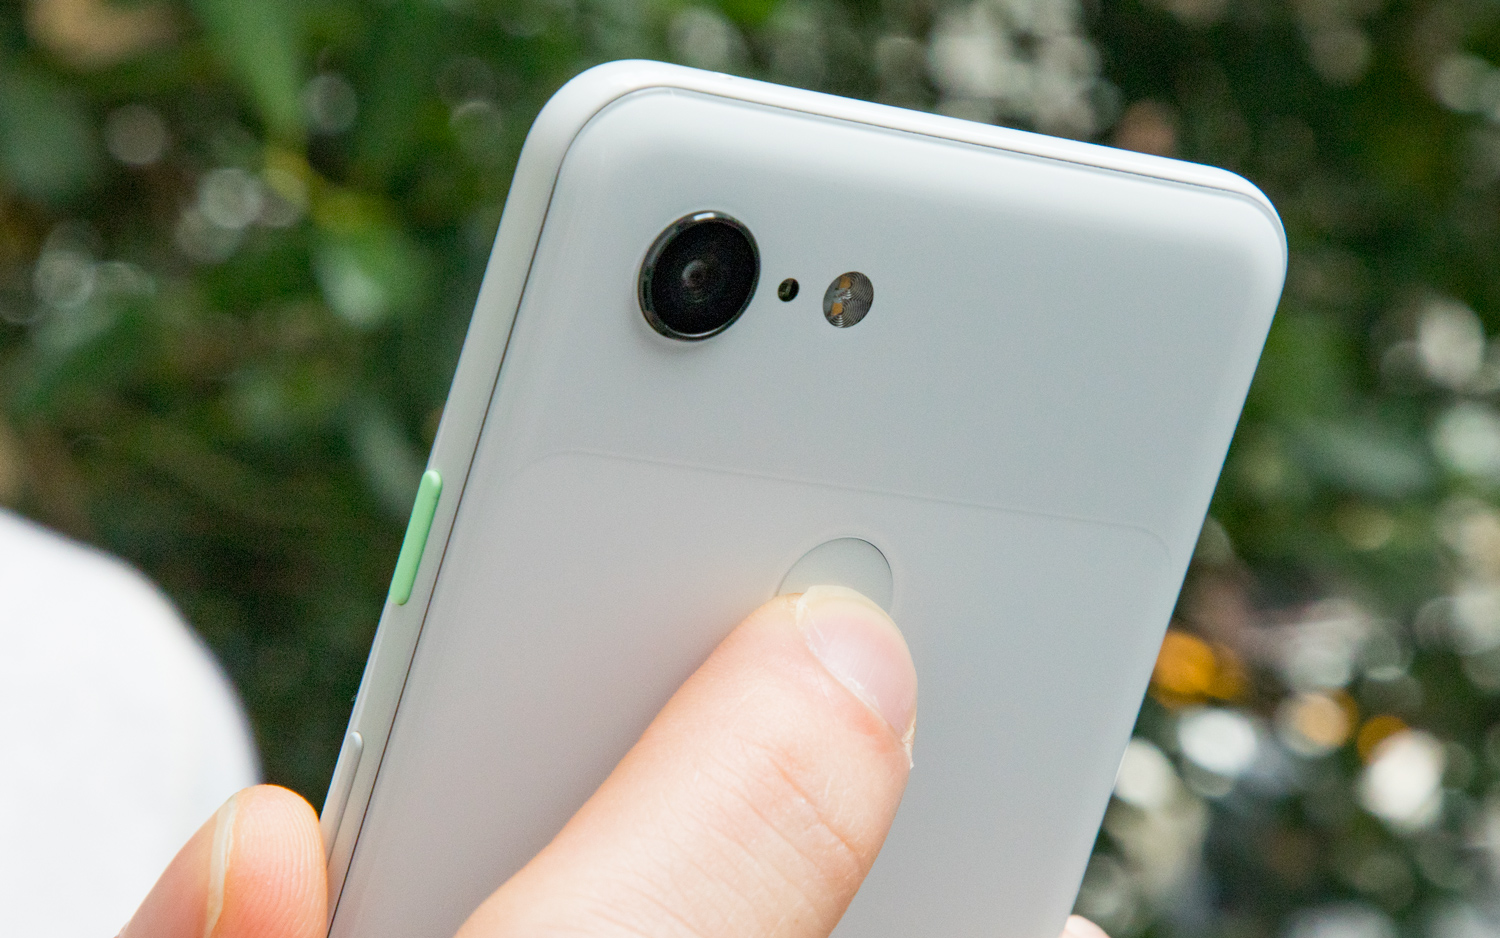 Pixel 3 Camera Hands-On: How Good Is It? | Tom's Guide